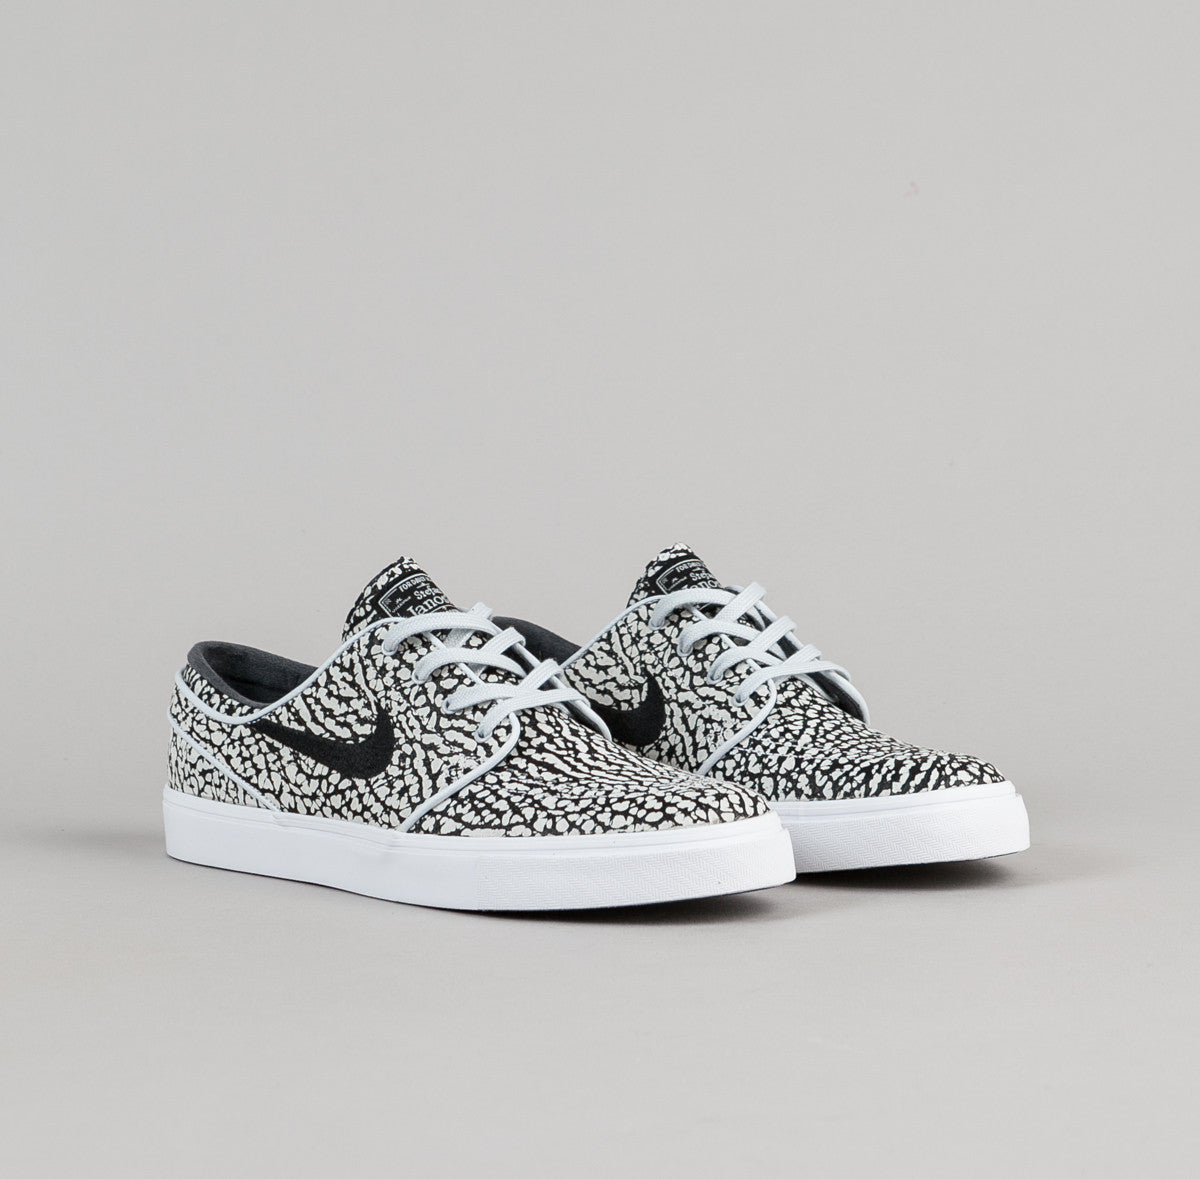 Nike SB Stefan Janoski Elite 'Road Pack' Shoes Pure Platinum Black